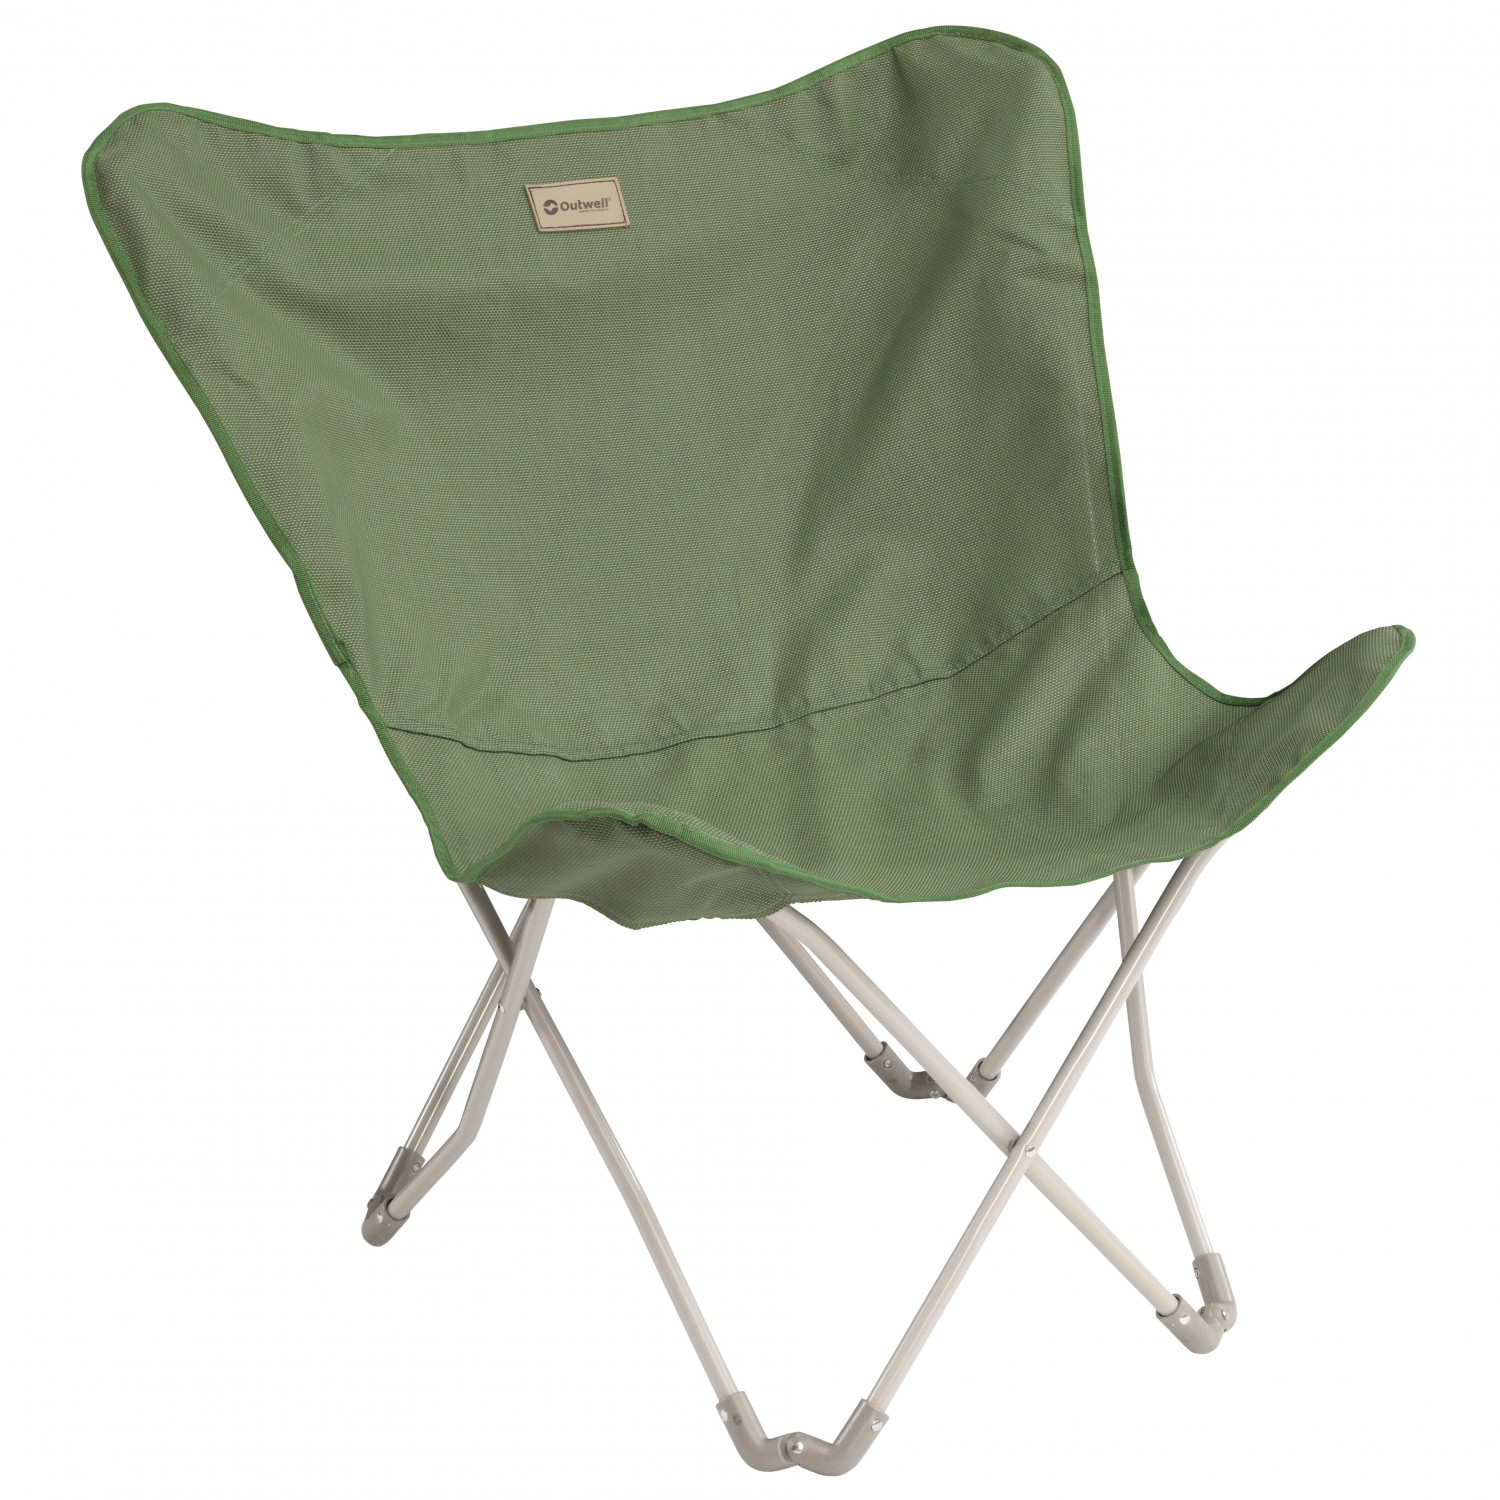 Outwell Sandsend Camping Chair Green Vineyard One Size